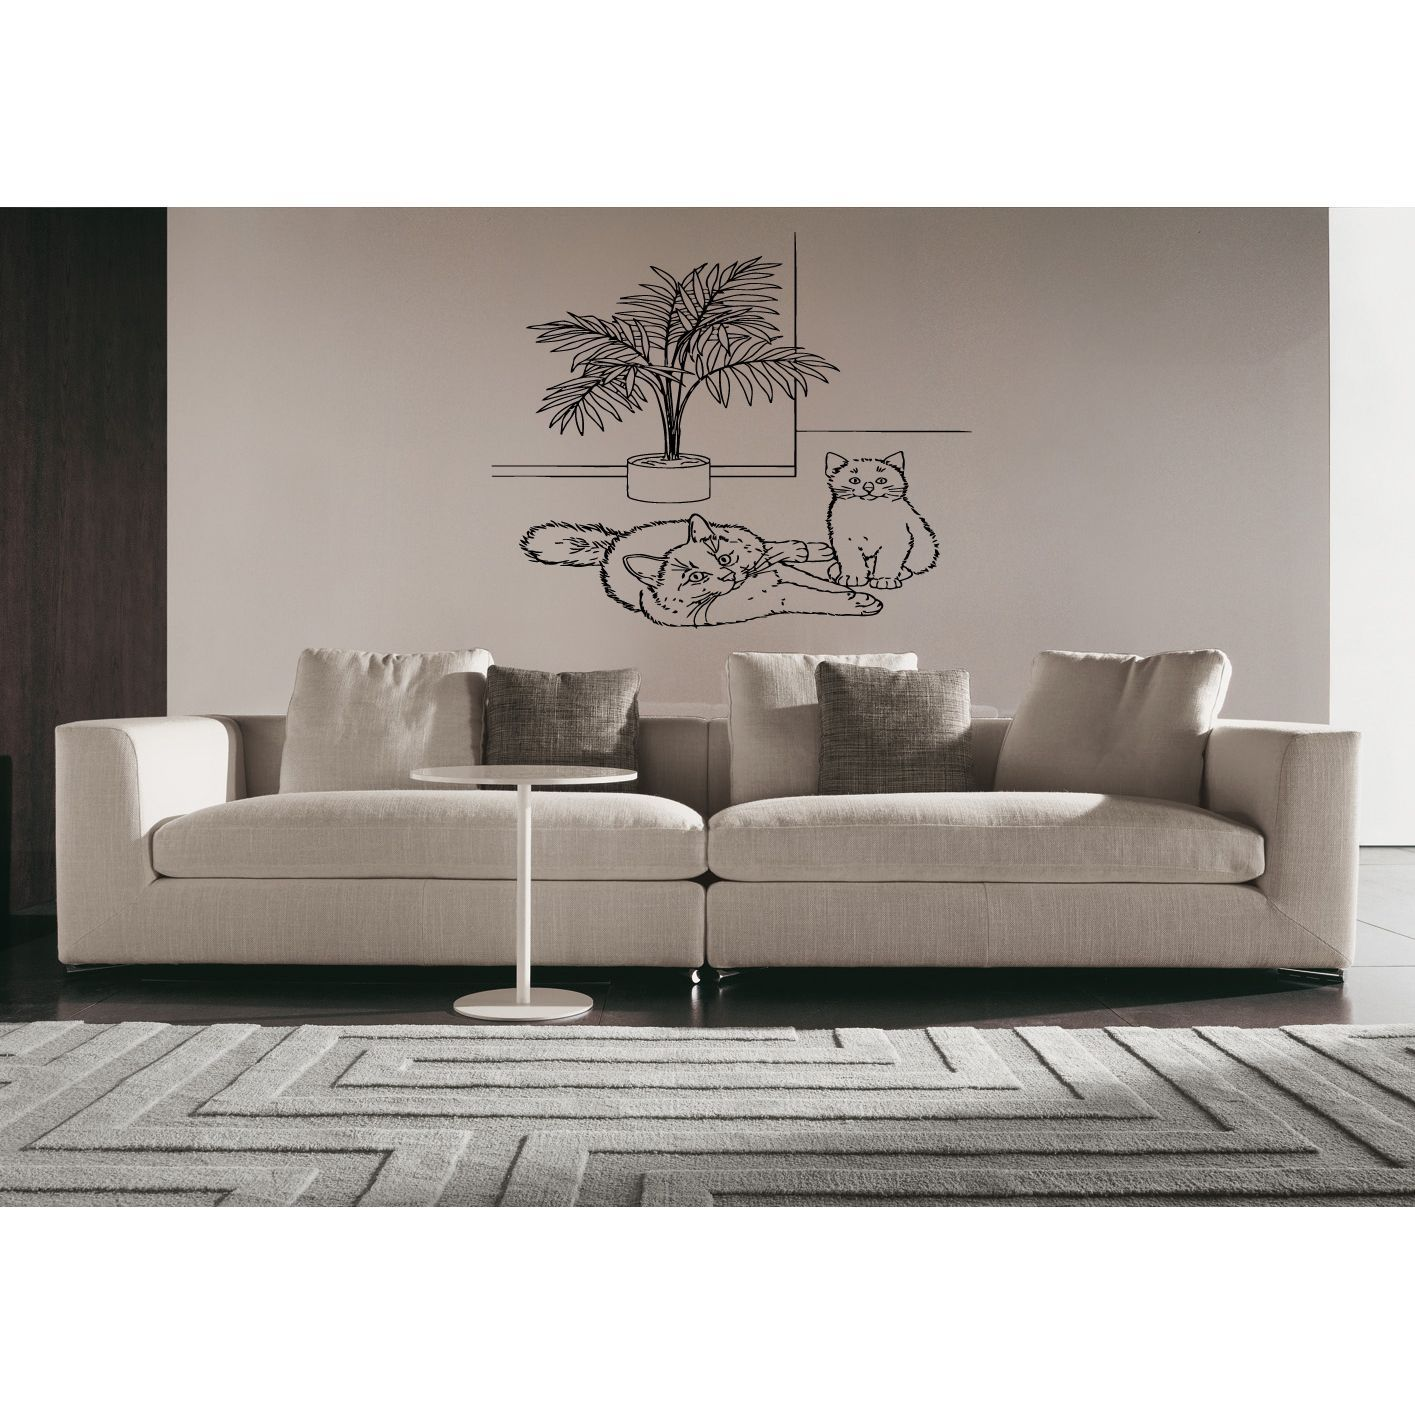 Birman Cat Breed With Palm Wall Art Sticker Decal